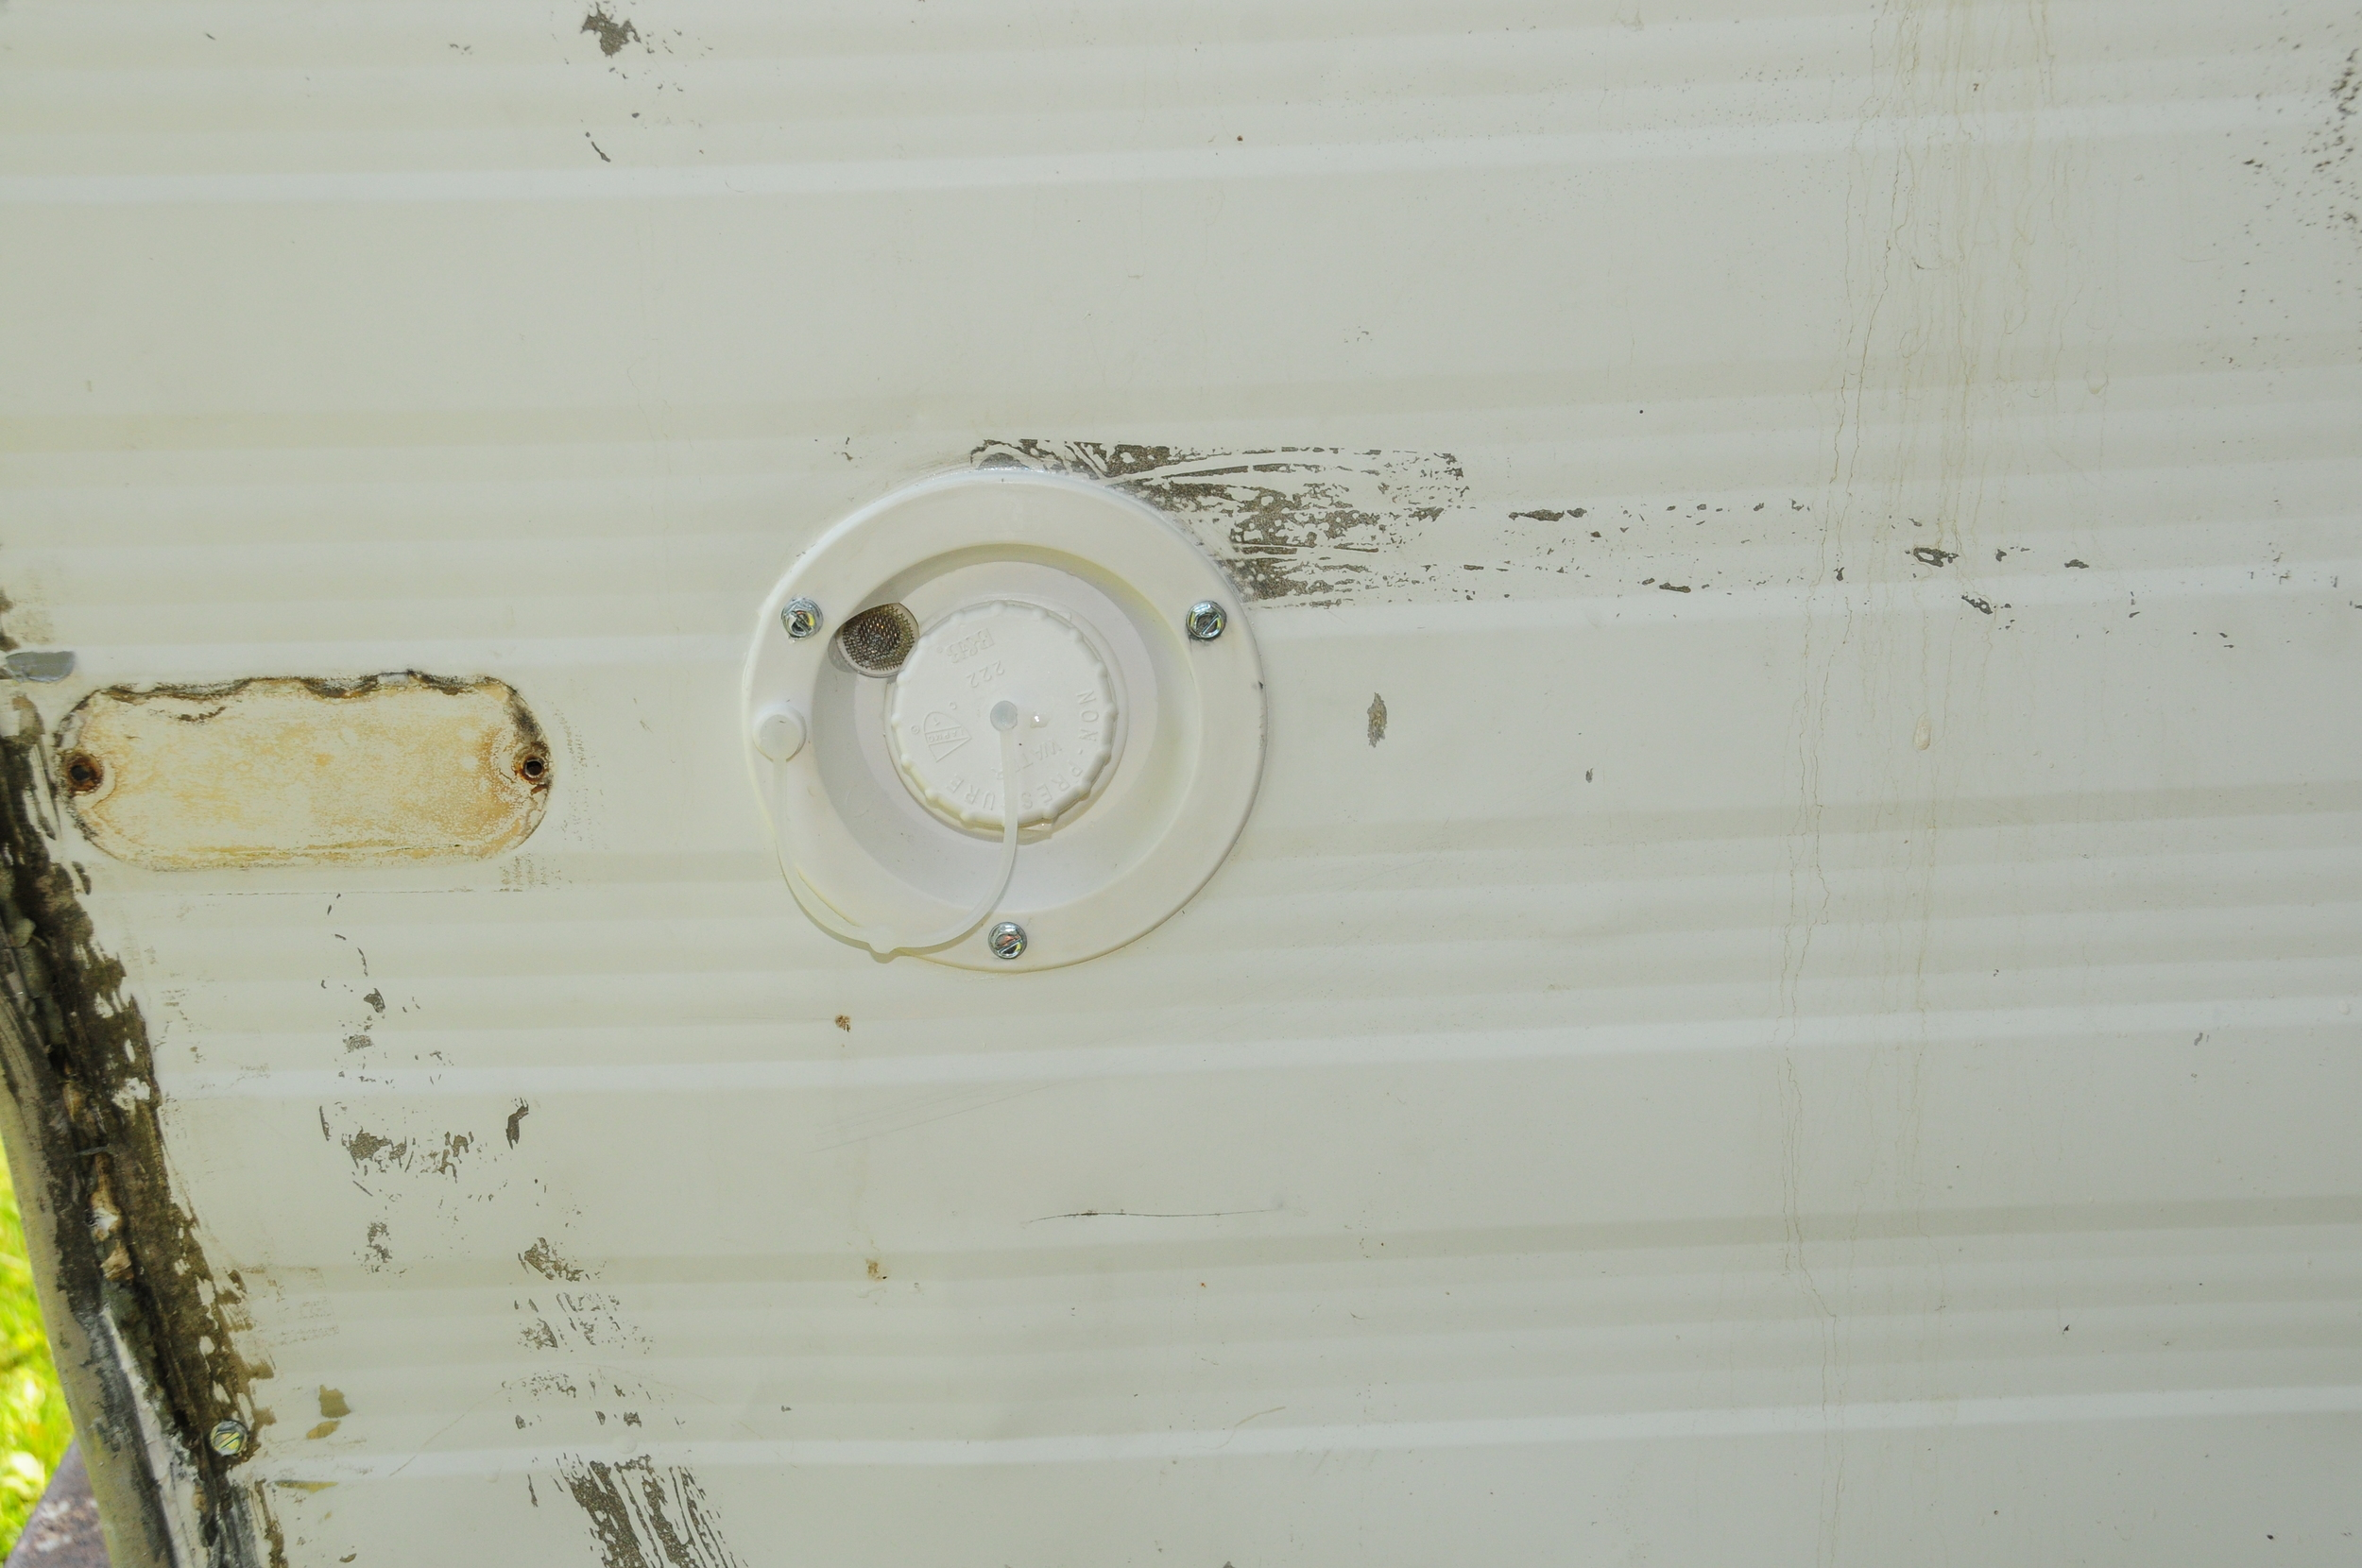 Close up of the fill. We caulked around the edges, and screwed it into the wall. The small spot to the left of the spout is the vent, which allows the tank to empty correctly.